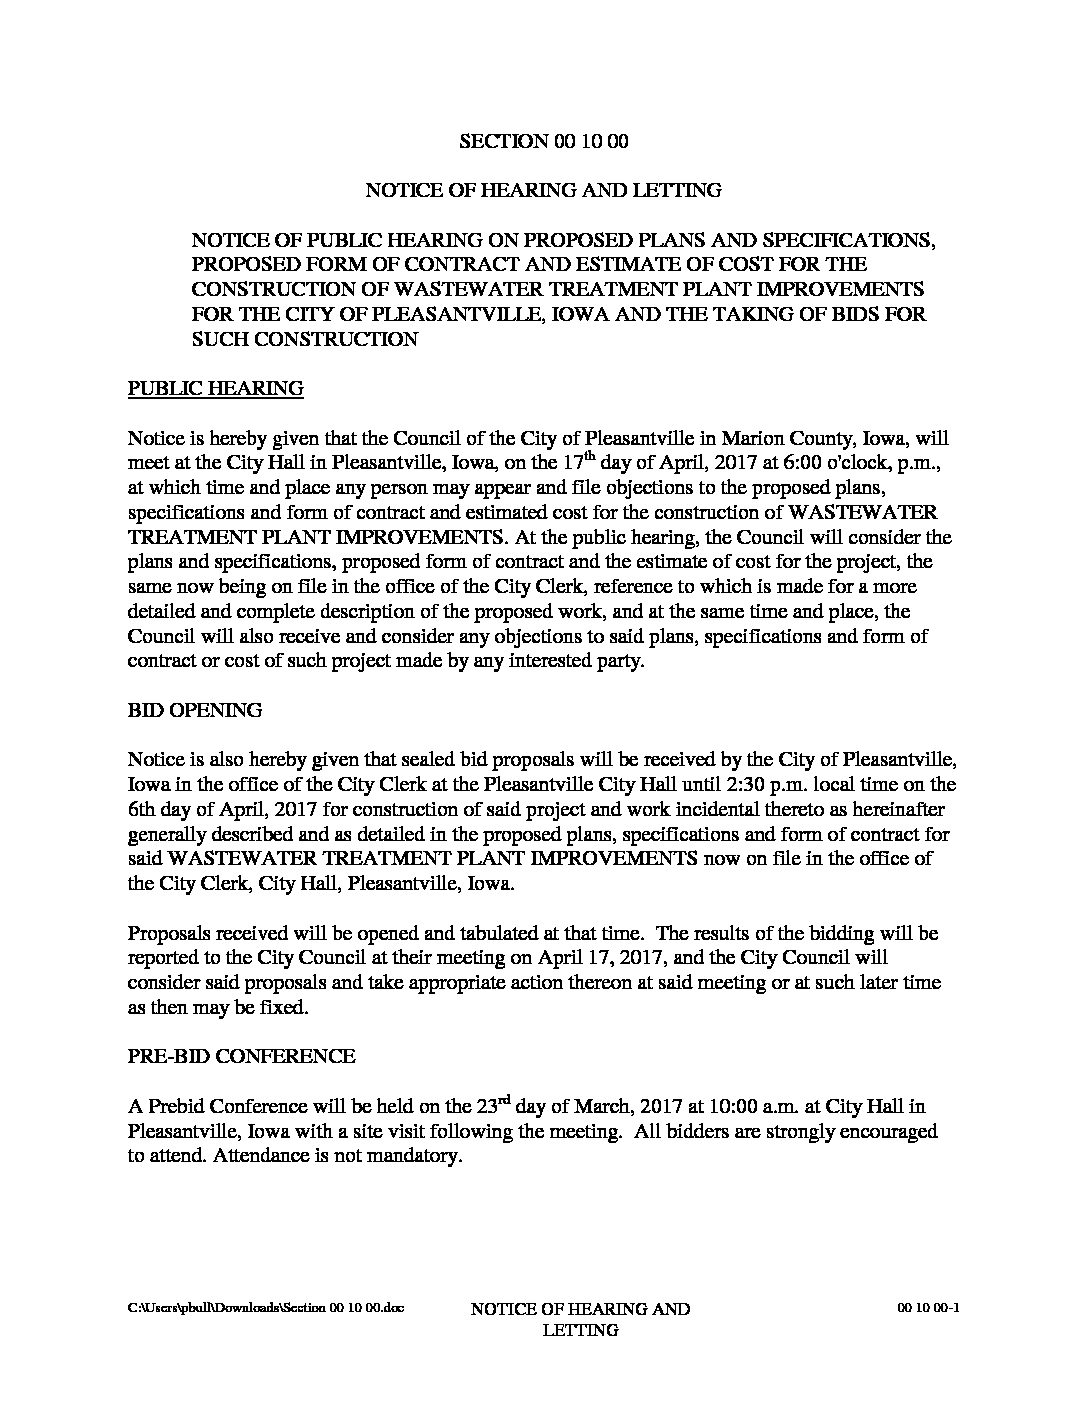 Notice of Hearing and Letting – City of Pleasantville